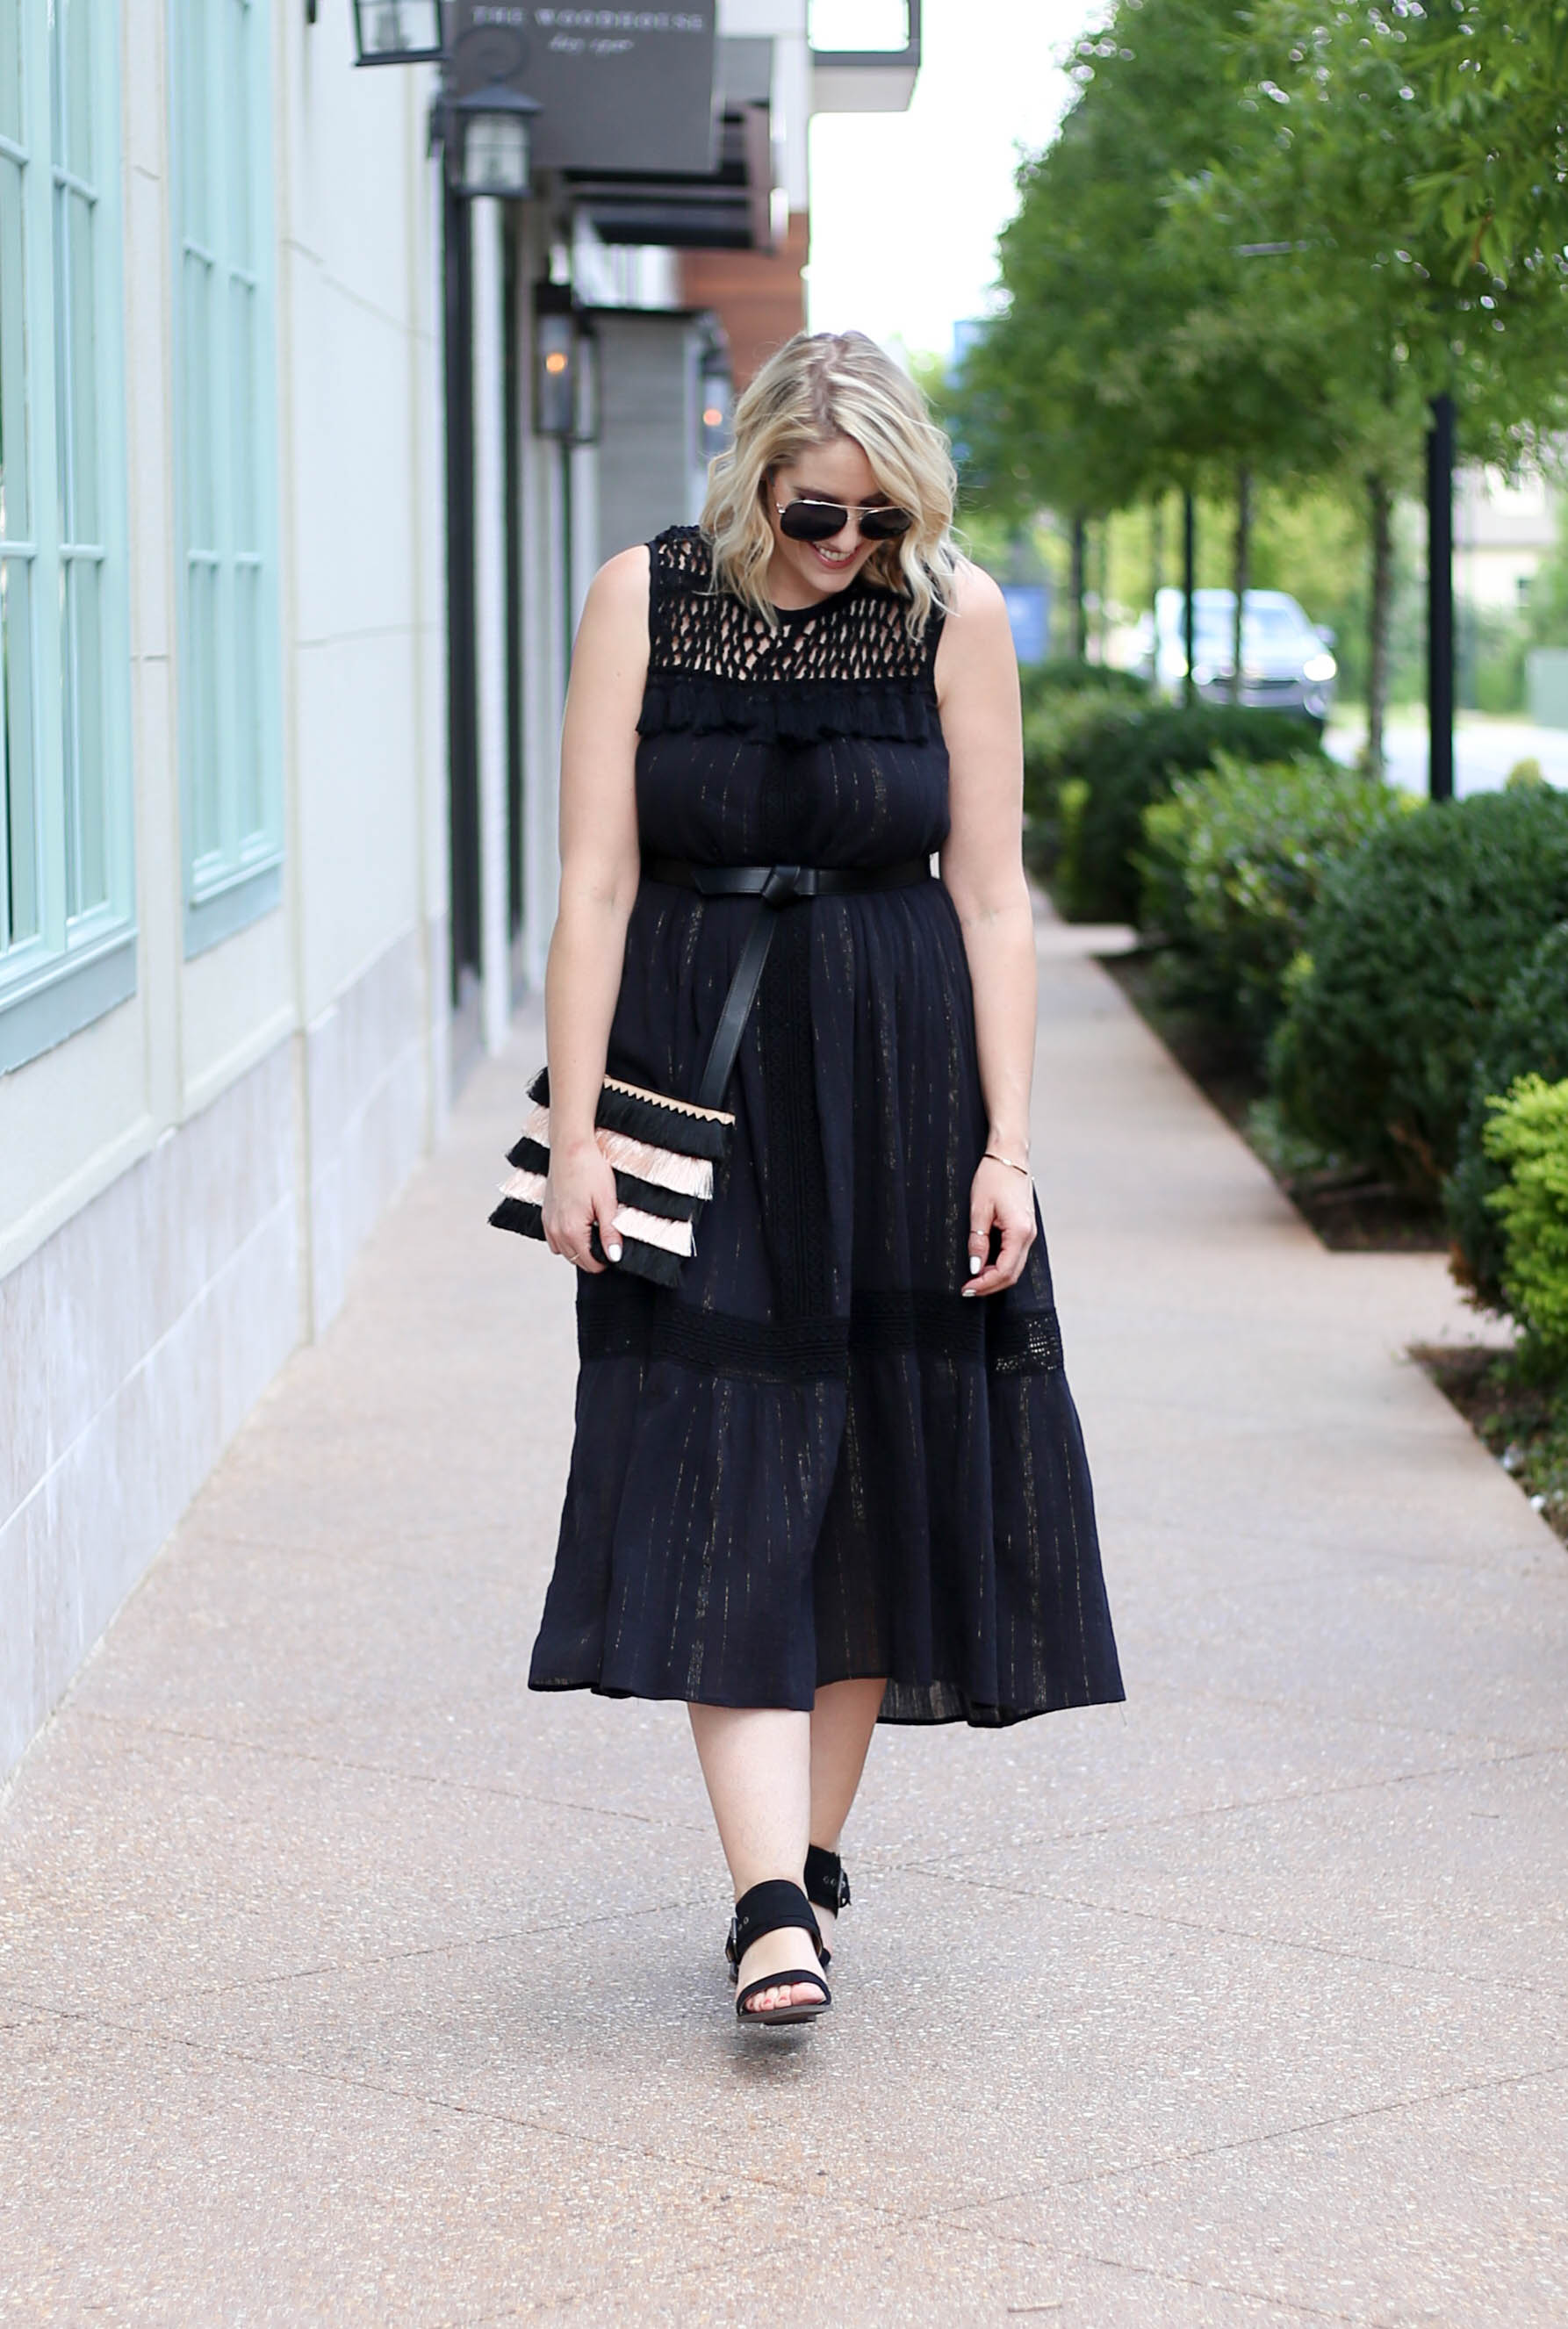 black boho midi dress #anthropologie #blackdress #lbd